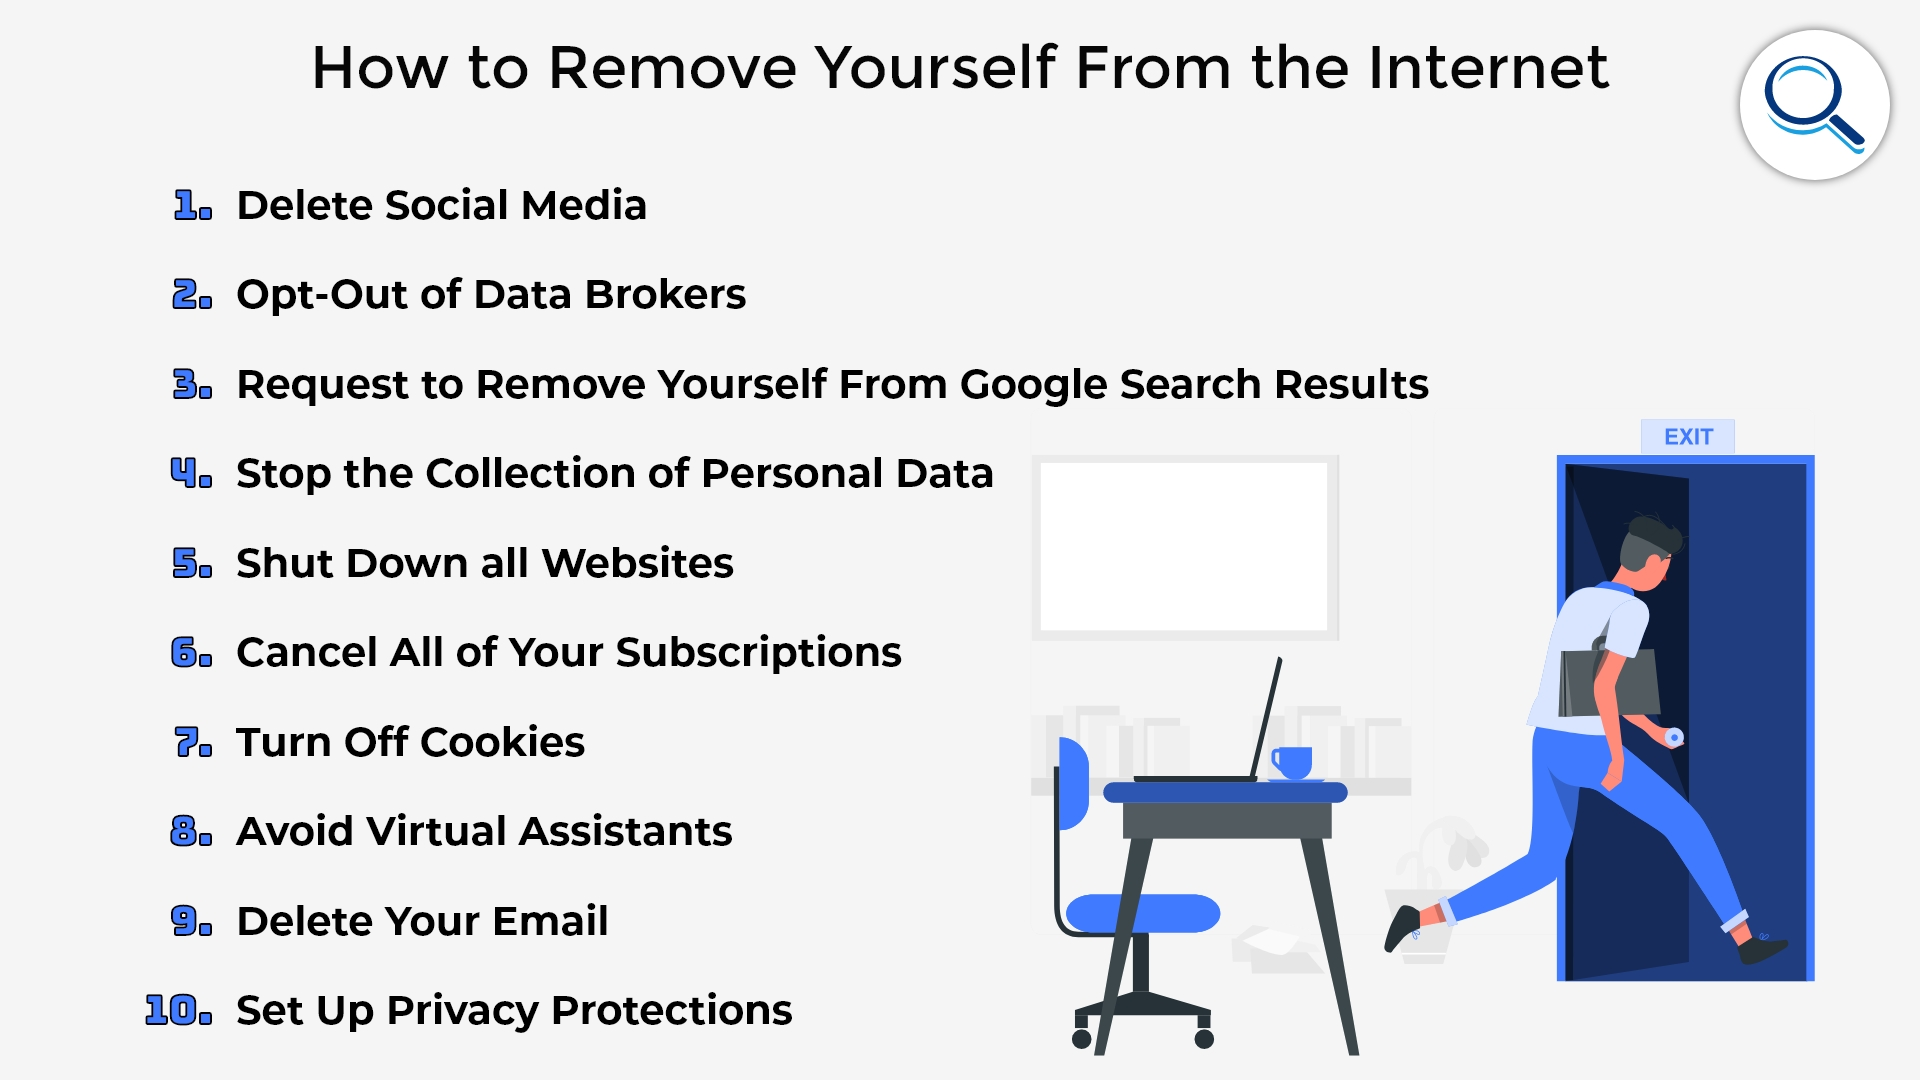 How To Remove Yourself From The Internet